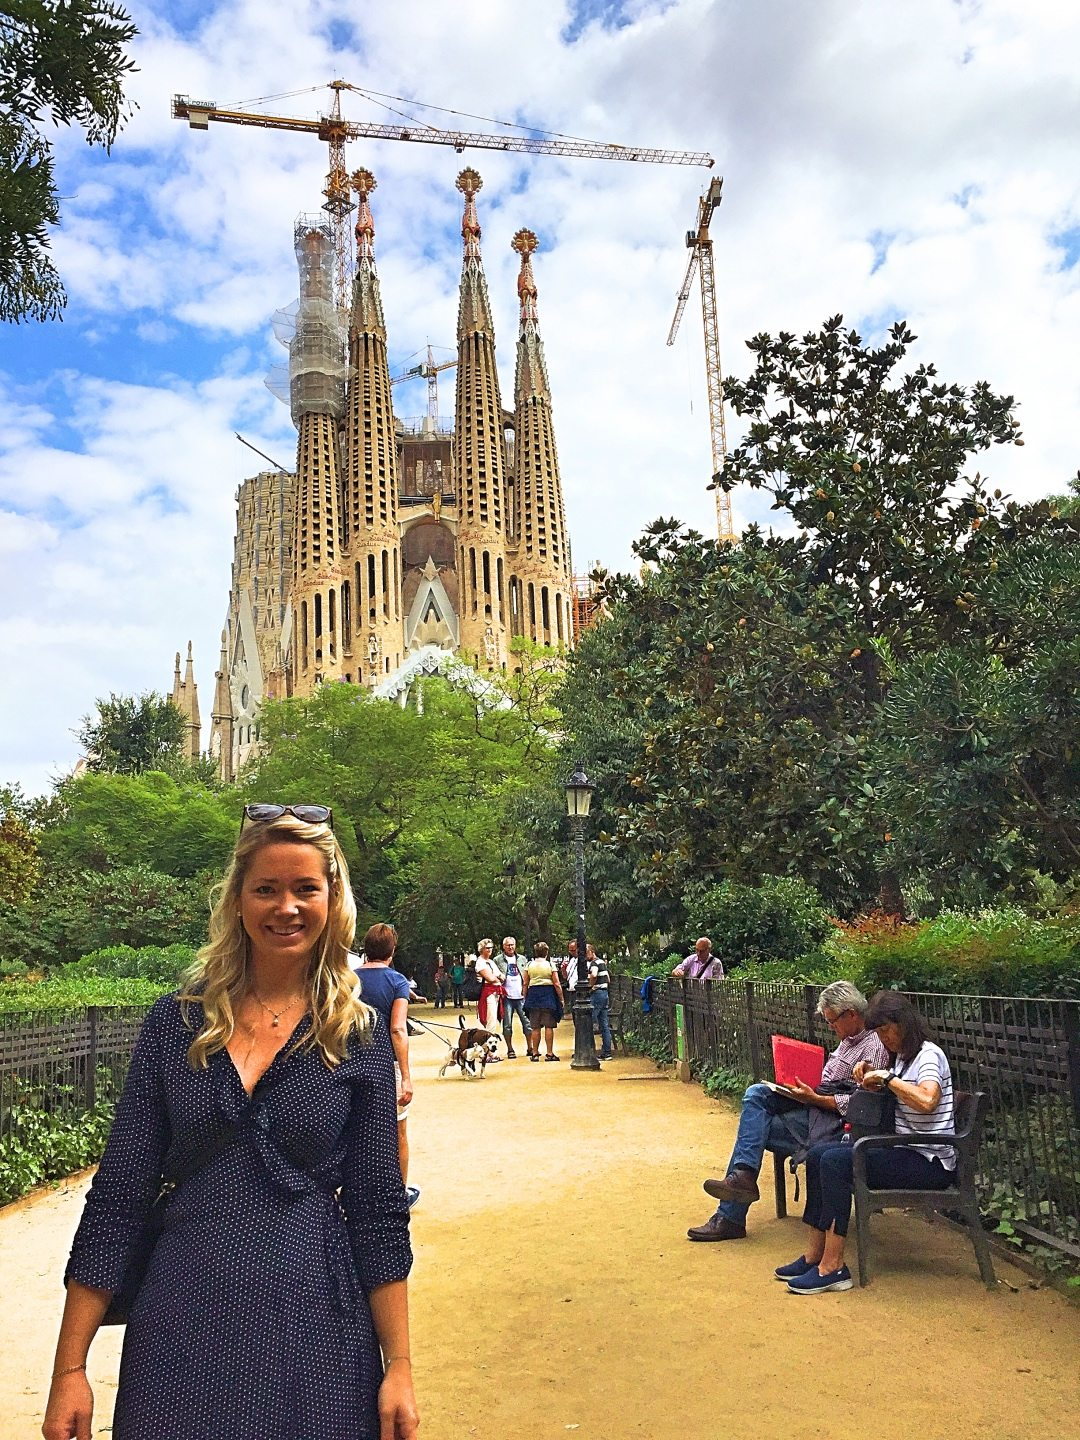 A picture of me with La Sagrada Familia being renovated